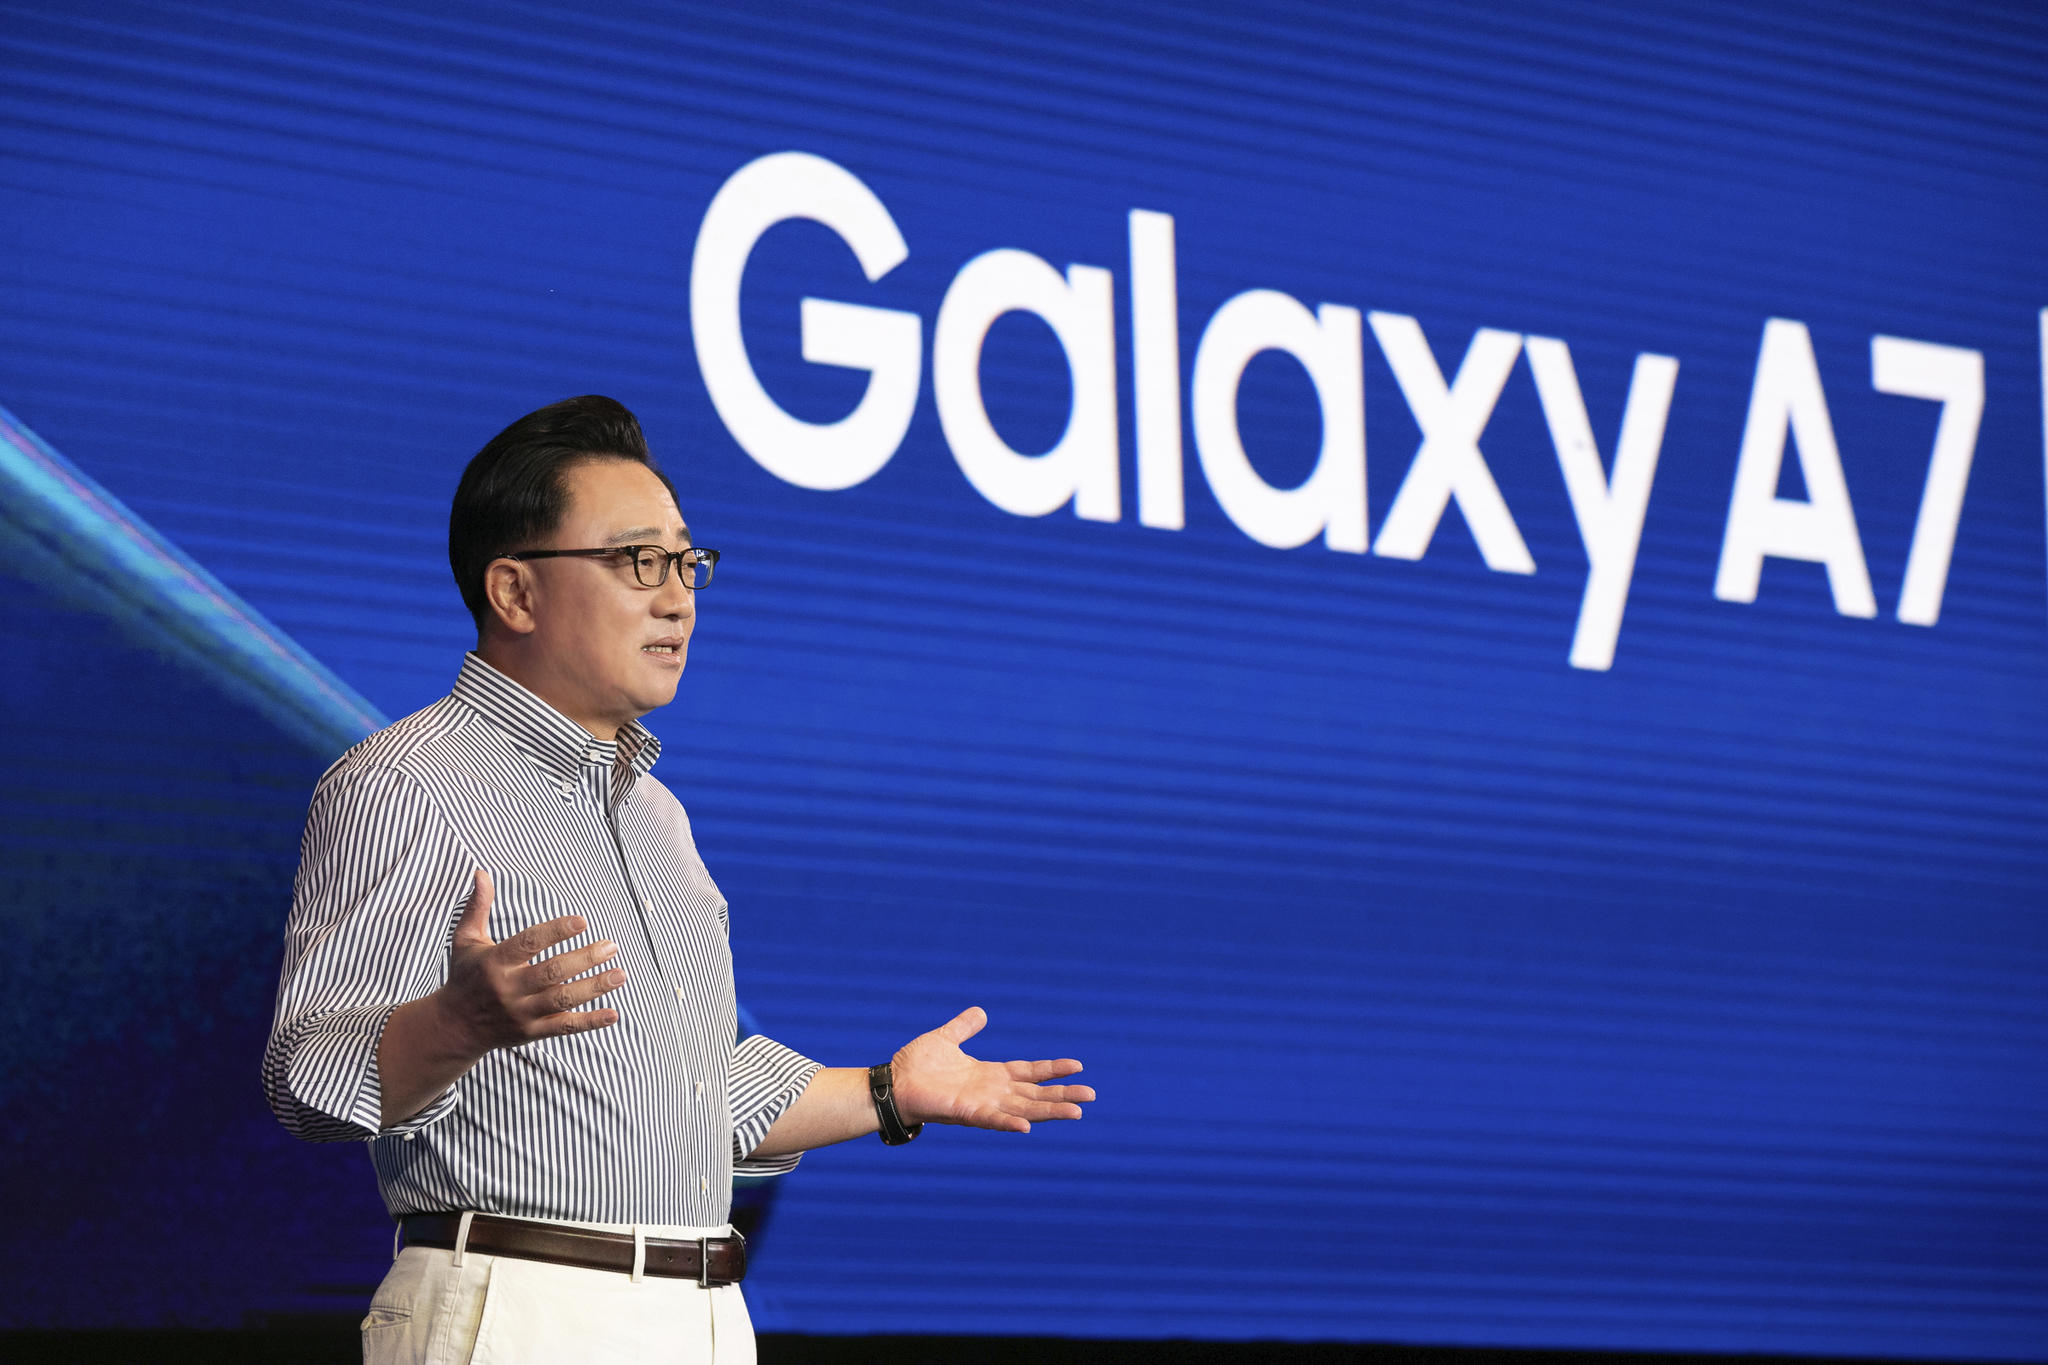 Samsung Mobile CEO D.J. Koh speaking at the Samsung Galaxy A7 and A9 global launch.